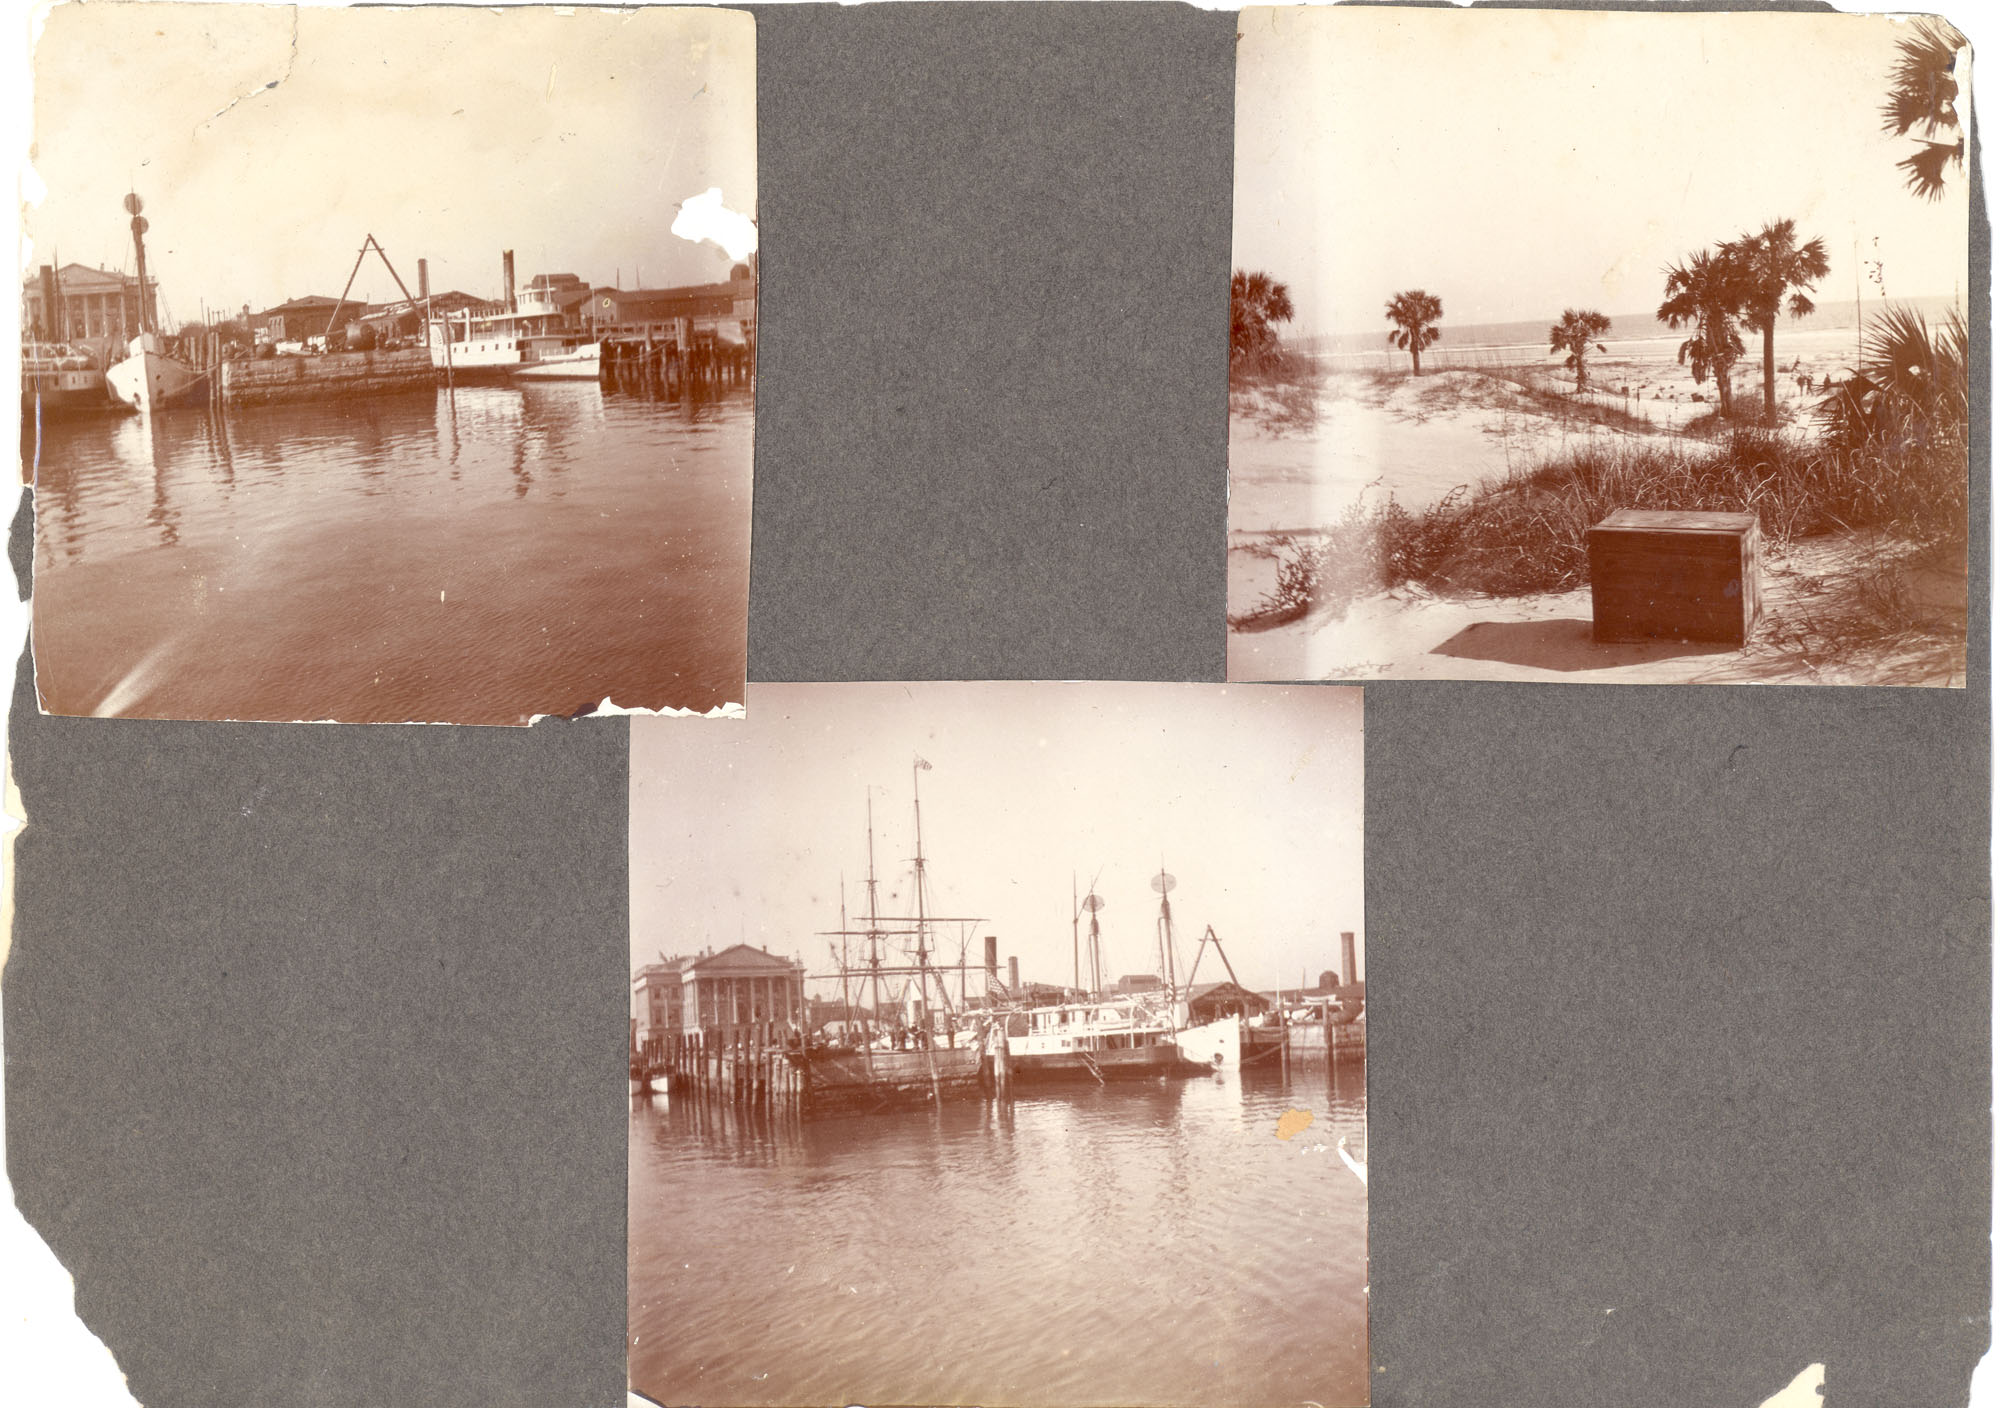 Charleston, Georgetown, and Flat Rock, Page 2 (front): Charleston Harbor / Beach Scene